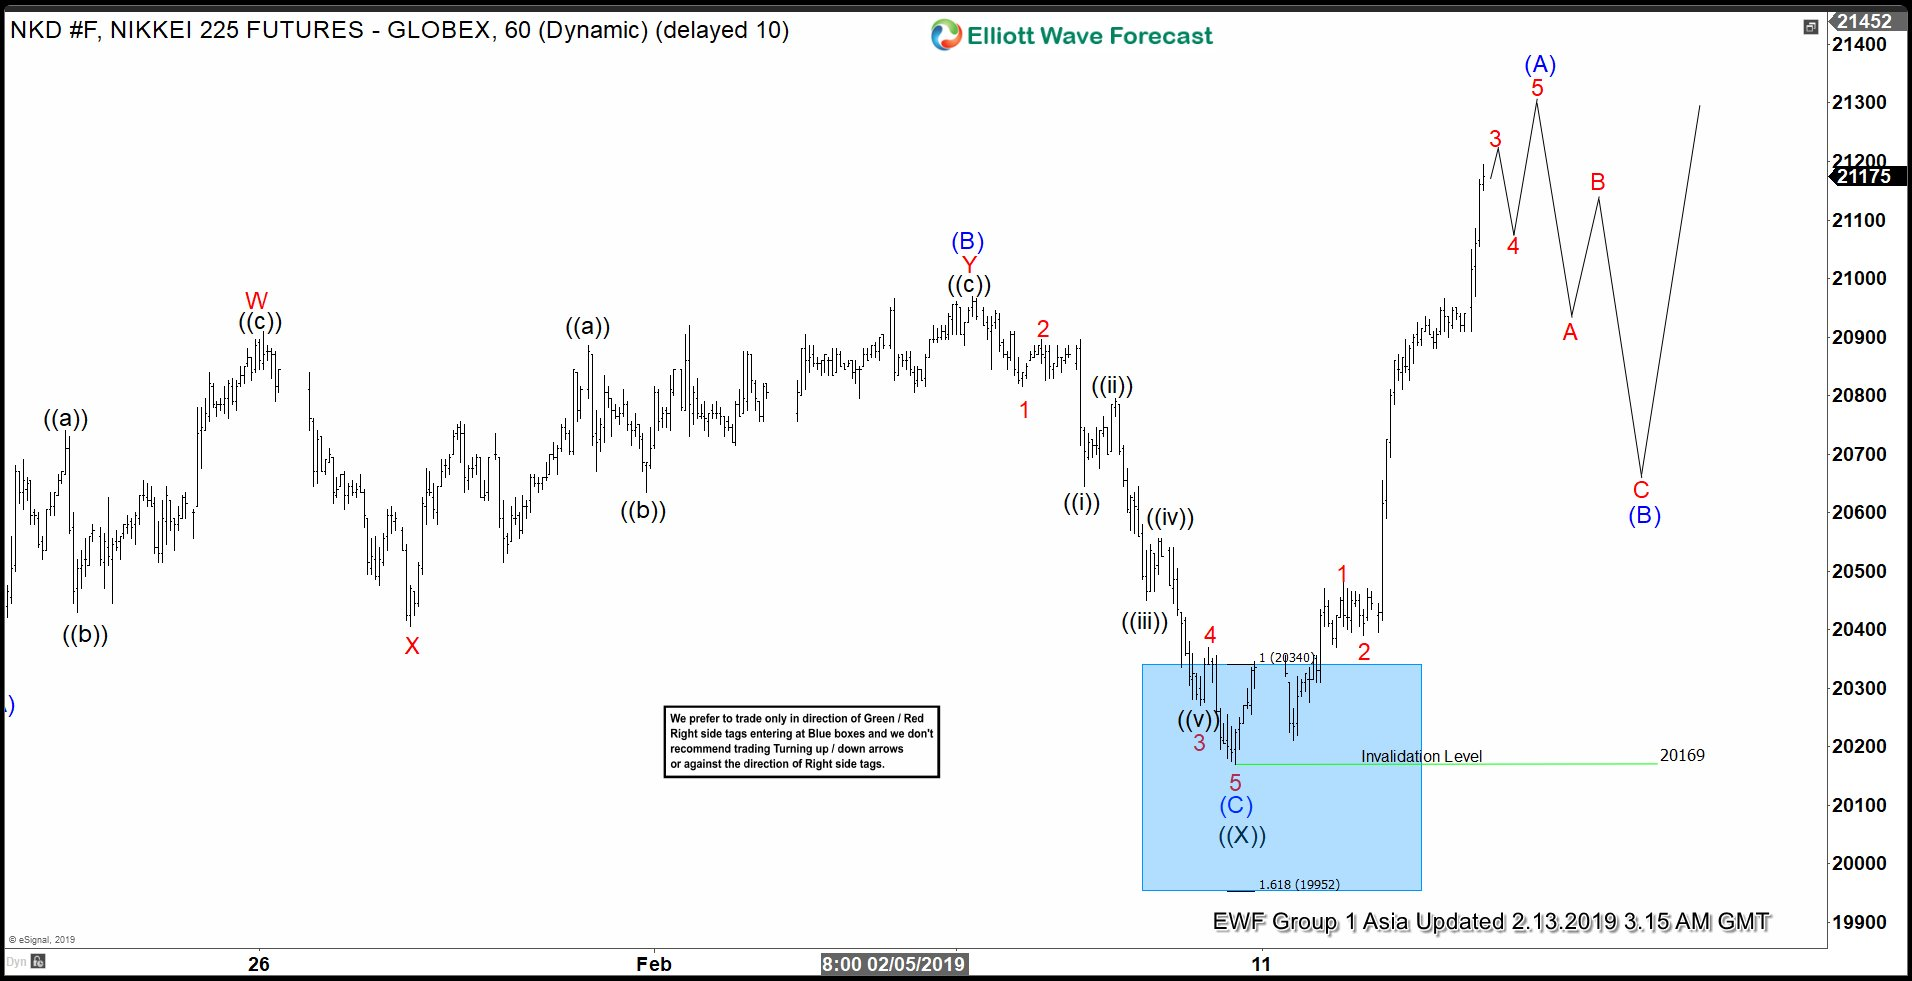 Elliott Wave View: Further Rally in Nikkei Favored